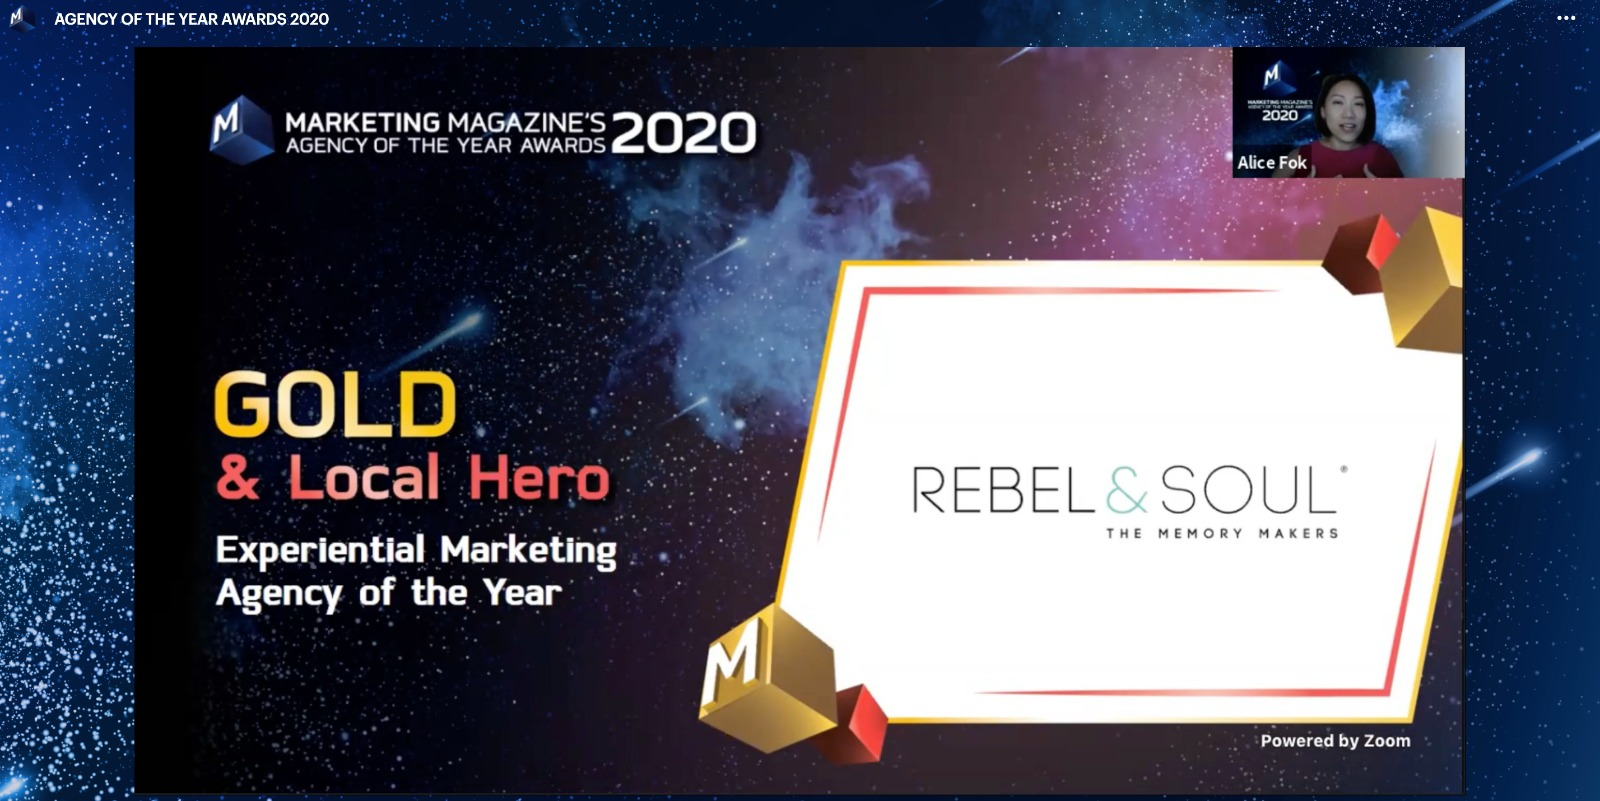 Marketing Magazine - Rebel & Soul - GOLD - 2020 Experiential Marketing Agency of the Year